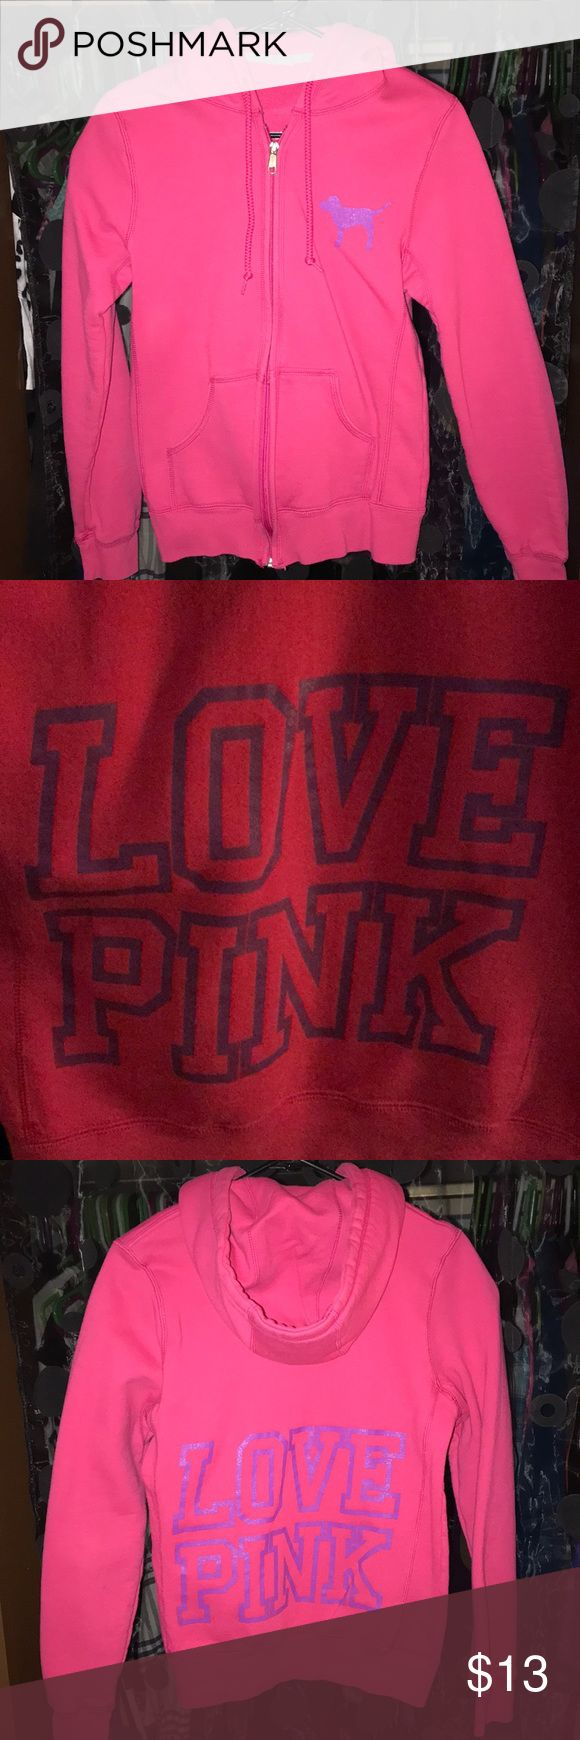 PINK Victoria Secret Love Pink Zip Up Hoodie PINK Victoria Secret Love Pink Zip Up Hoodie Size: Small (This did not have the back size tag when I got it.) Worn a couple times, mainly for snowboarding.  Images and words are in purple. In great condition!  Open to offers! PINK Victoria's Secret Tops Sweatshirts & Hoodies